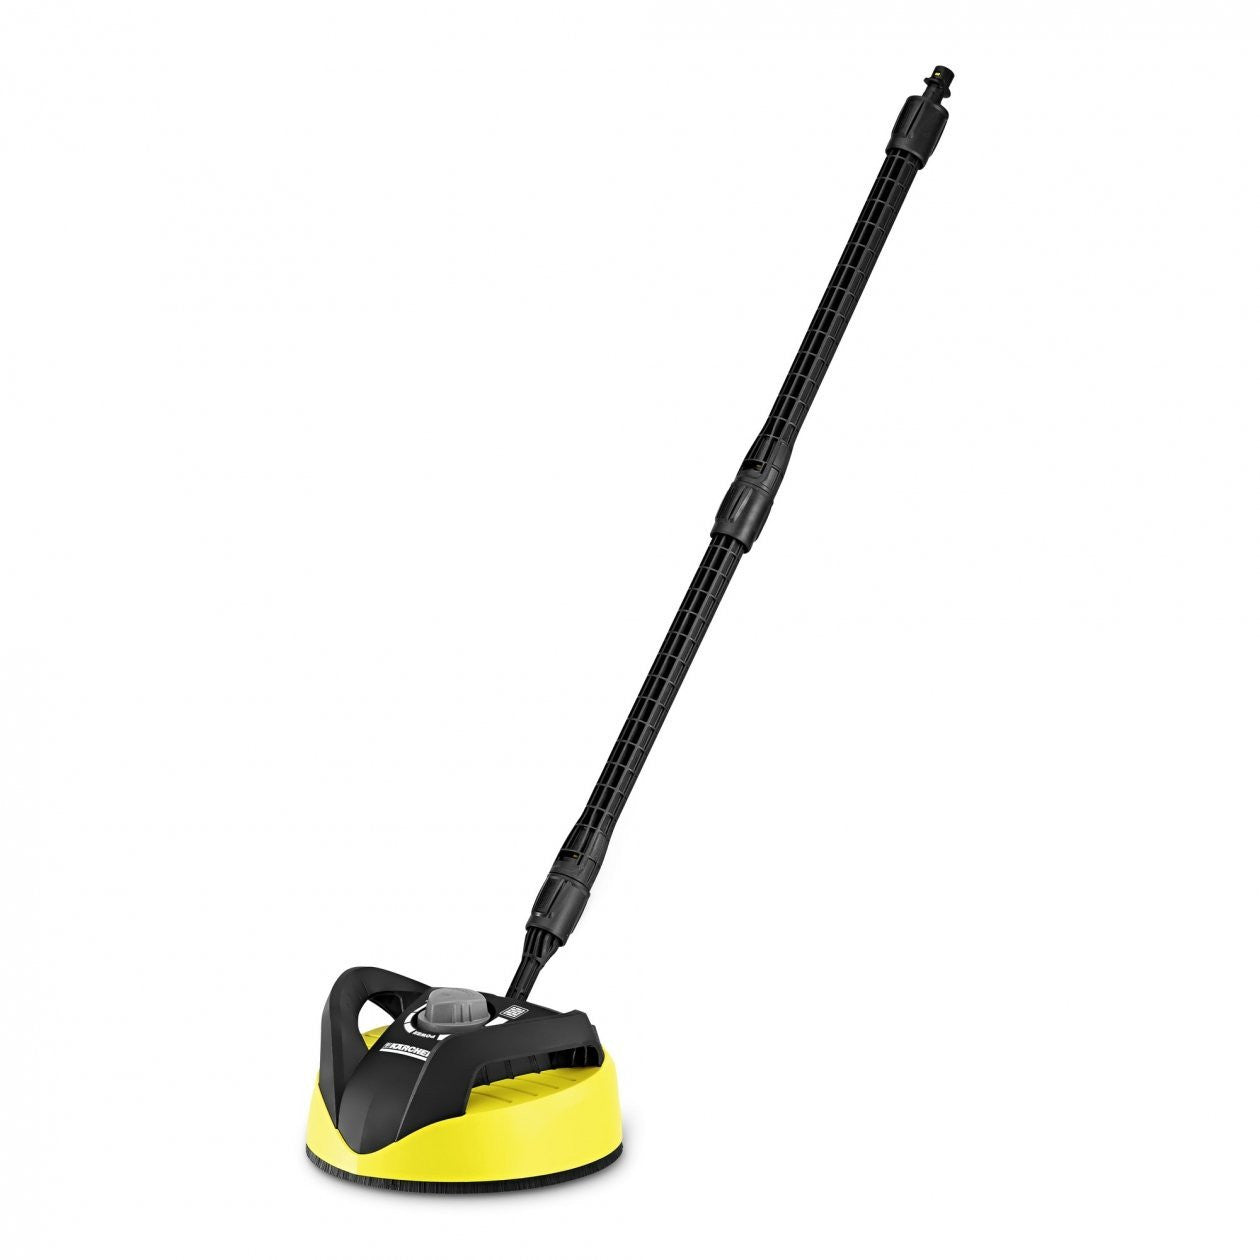 Karcher Patio Cleaner T350